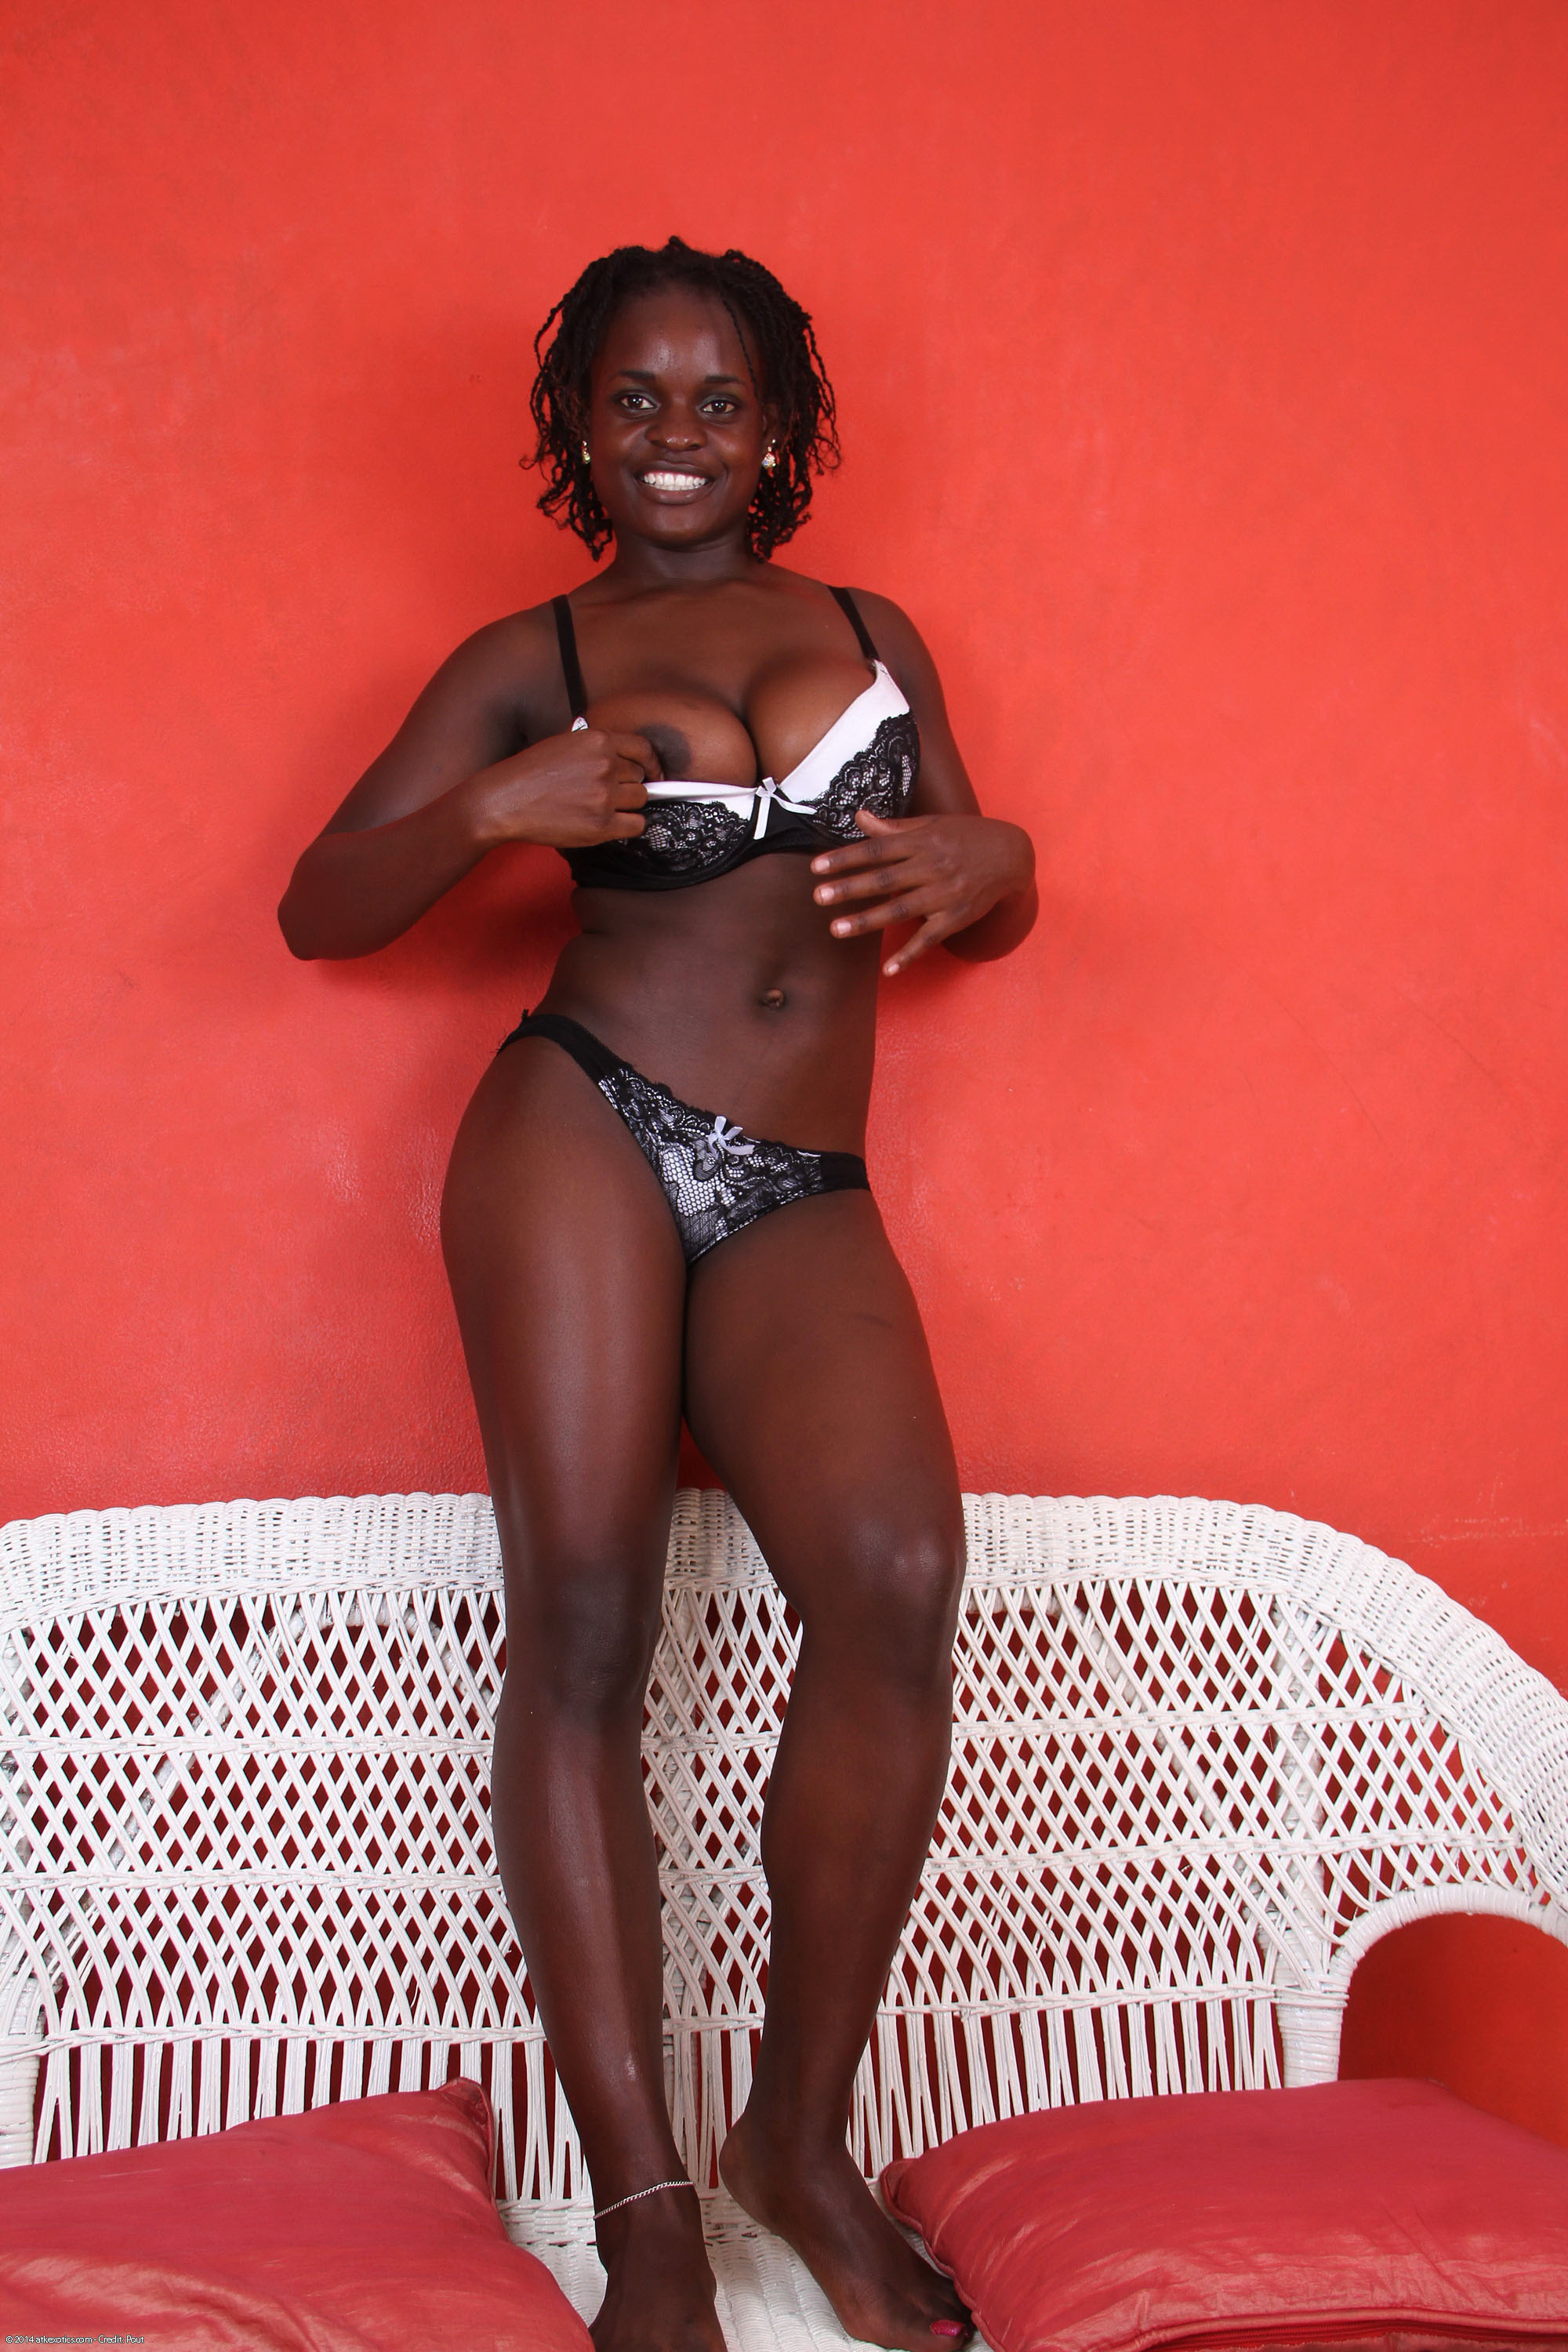 Atk ebony models